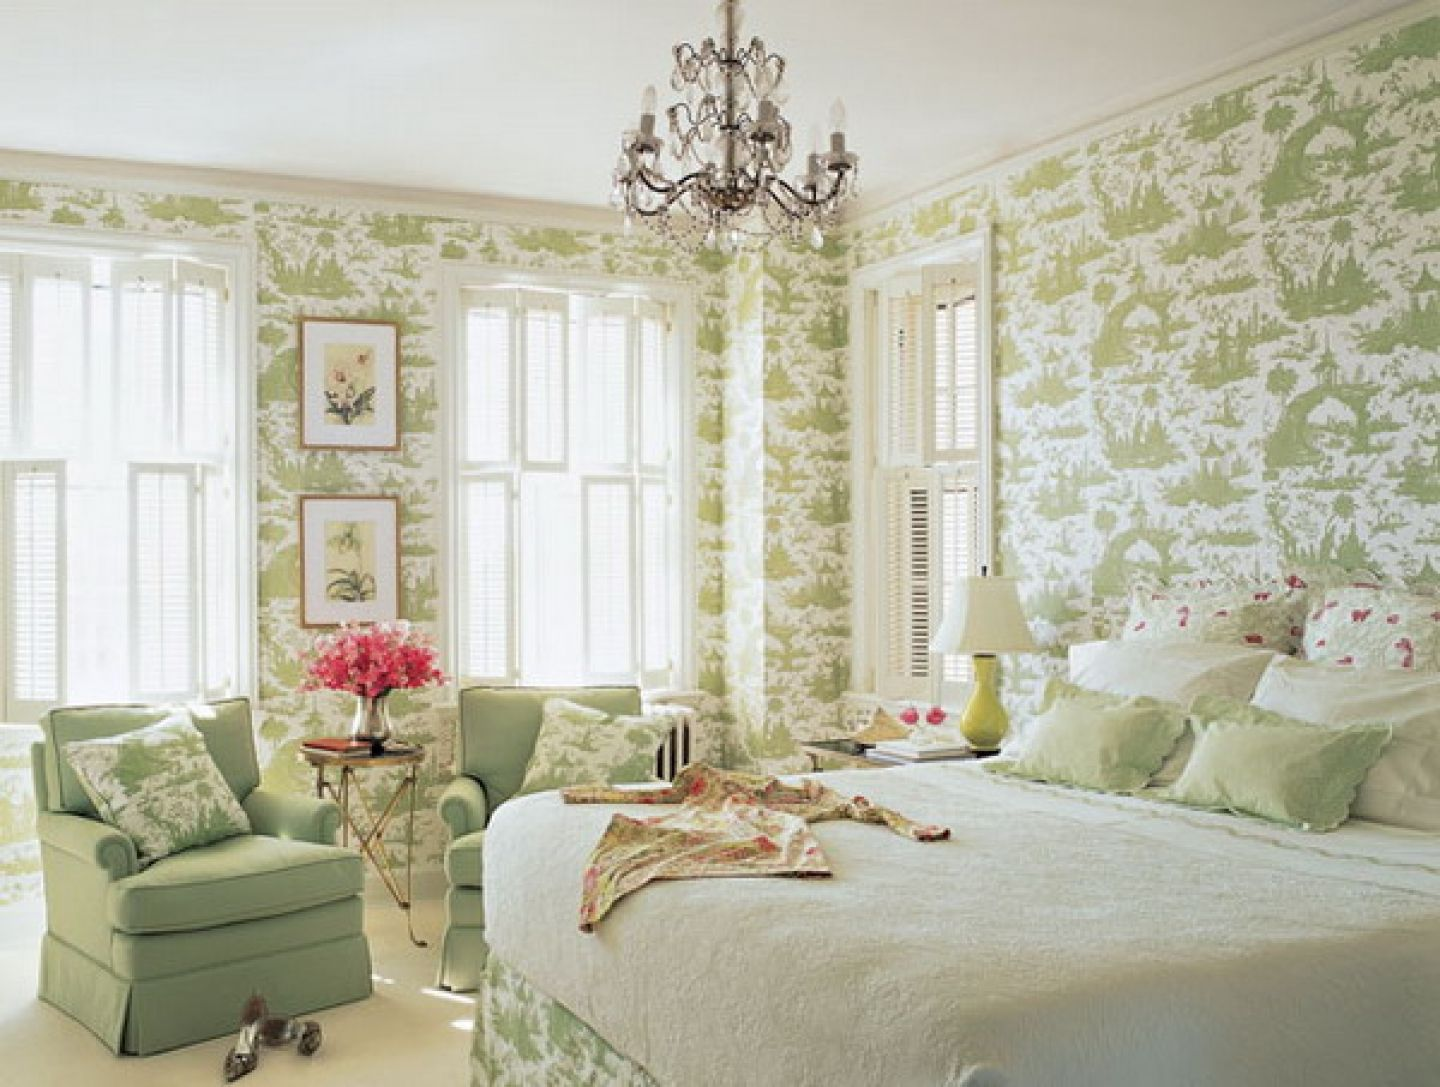 1000 images about 4 paredes wallpaper on pinterest - Wallpaper Design Ideas